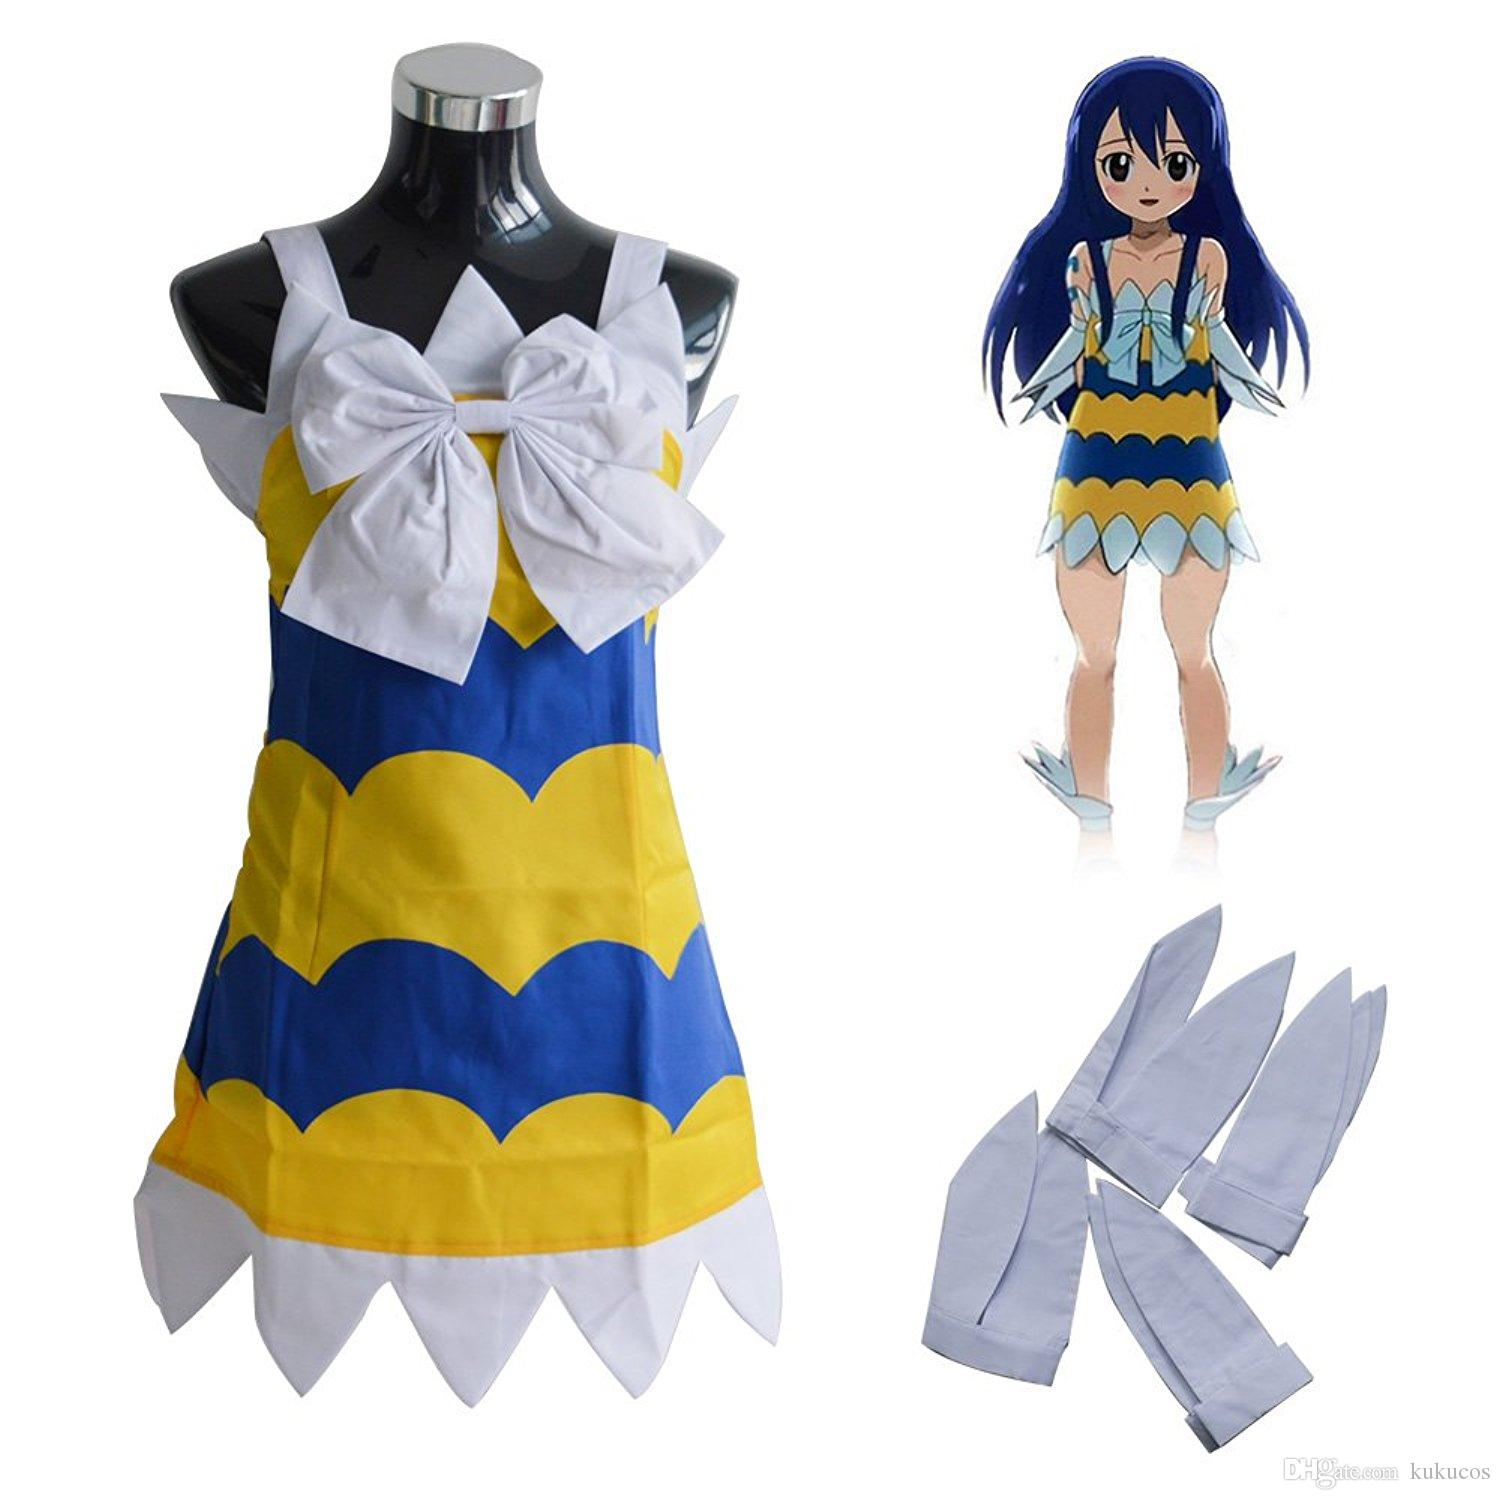 Kukucos Anime Women S Fairy Tail Wendy Marvell Lovely Girls Dress